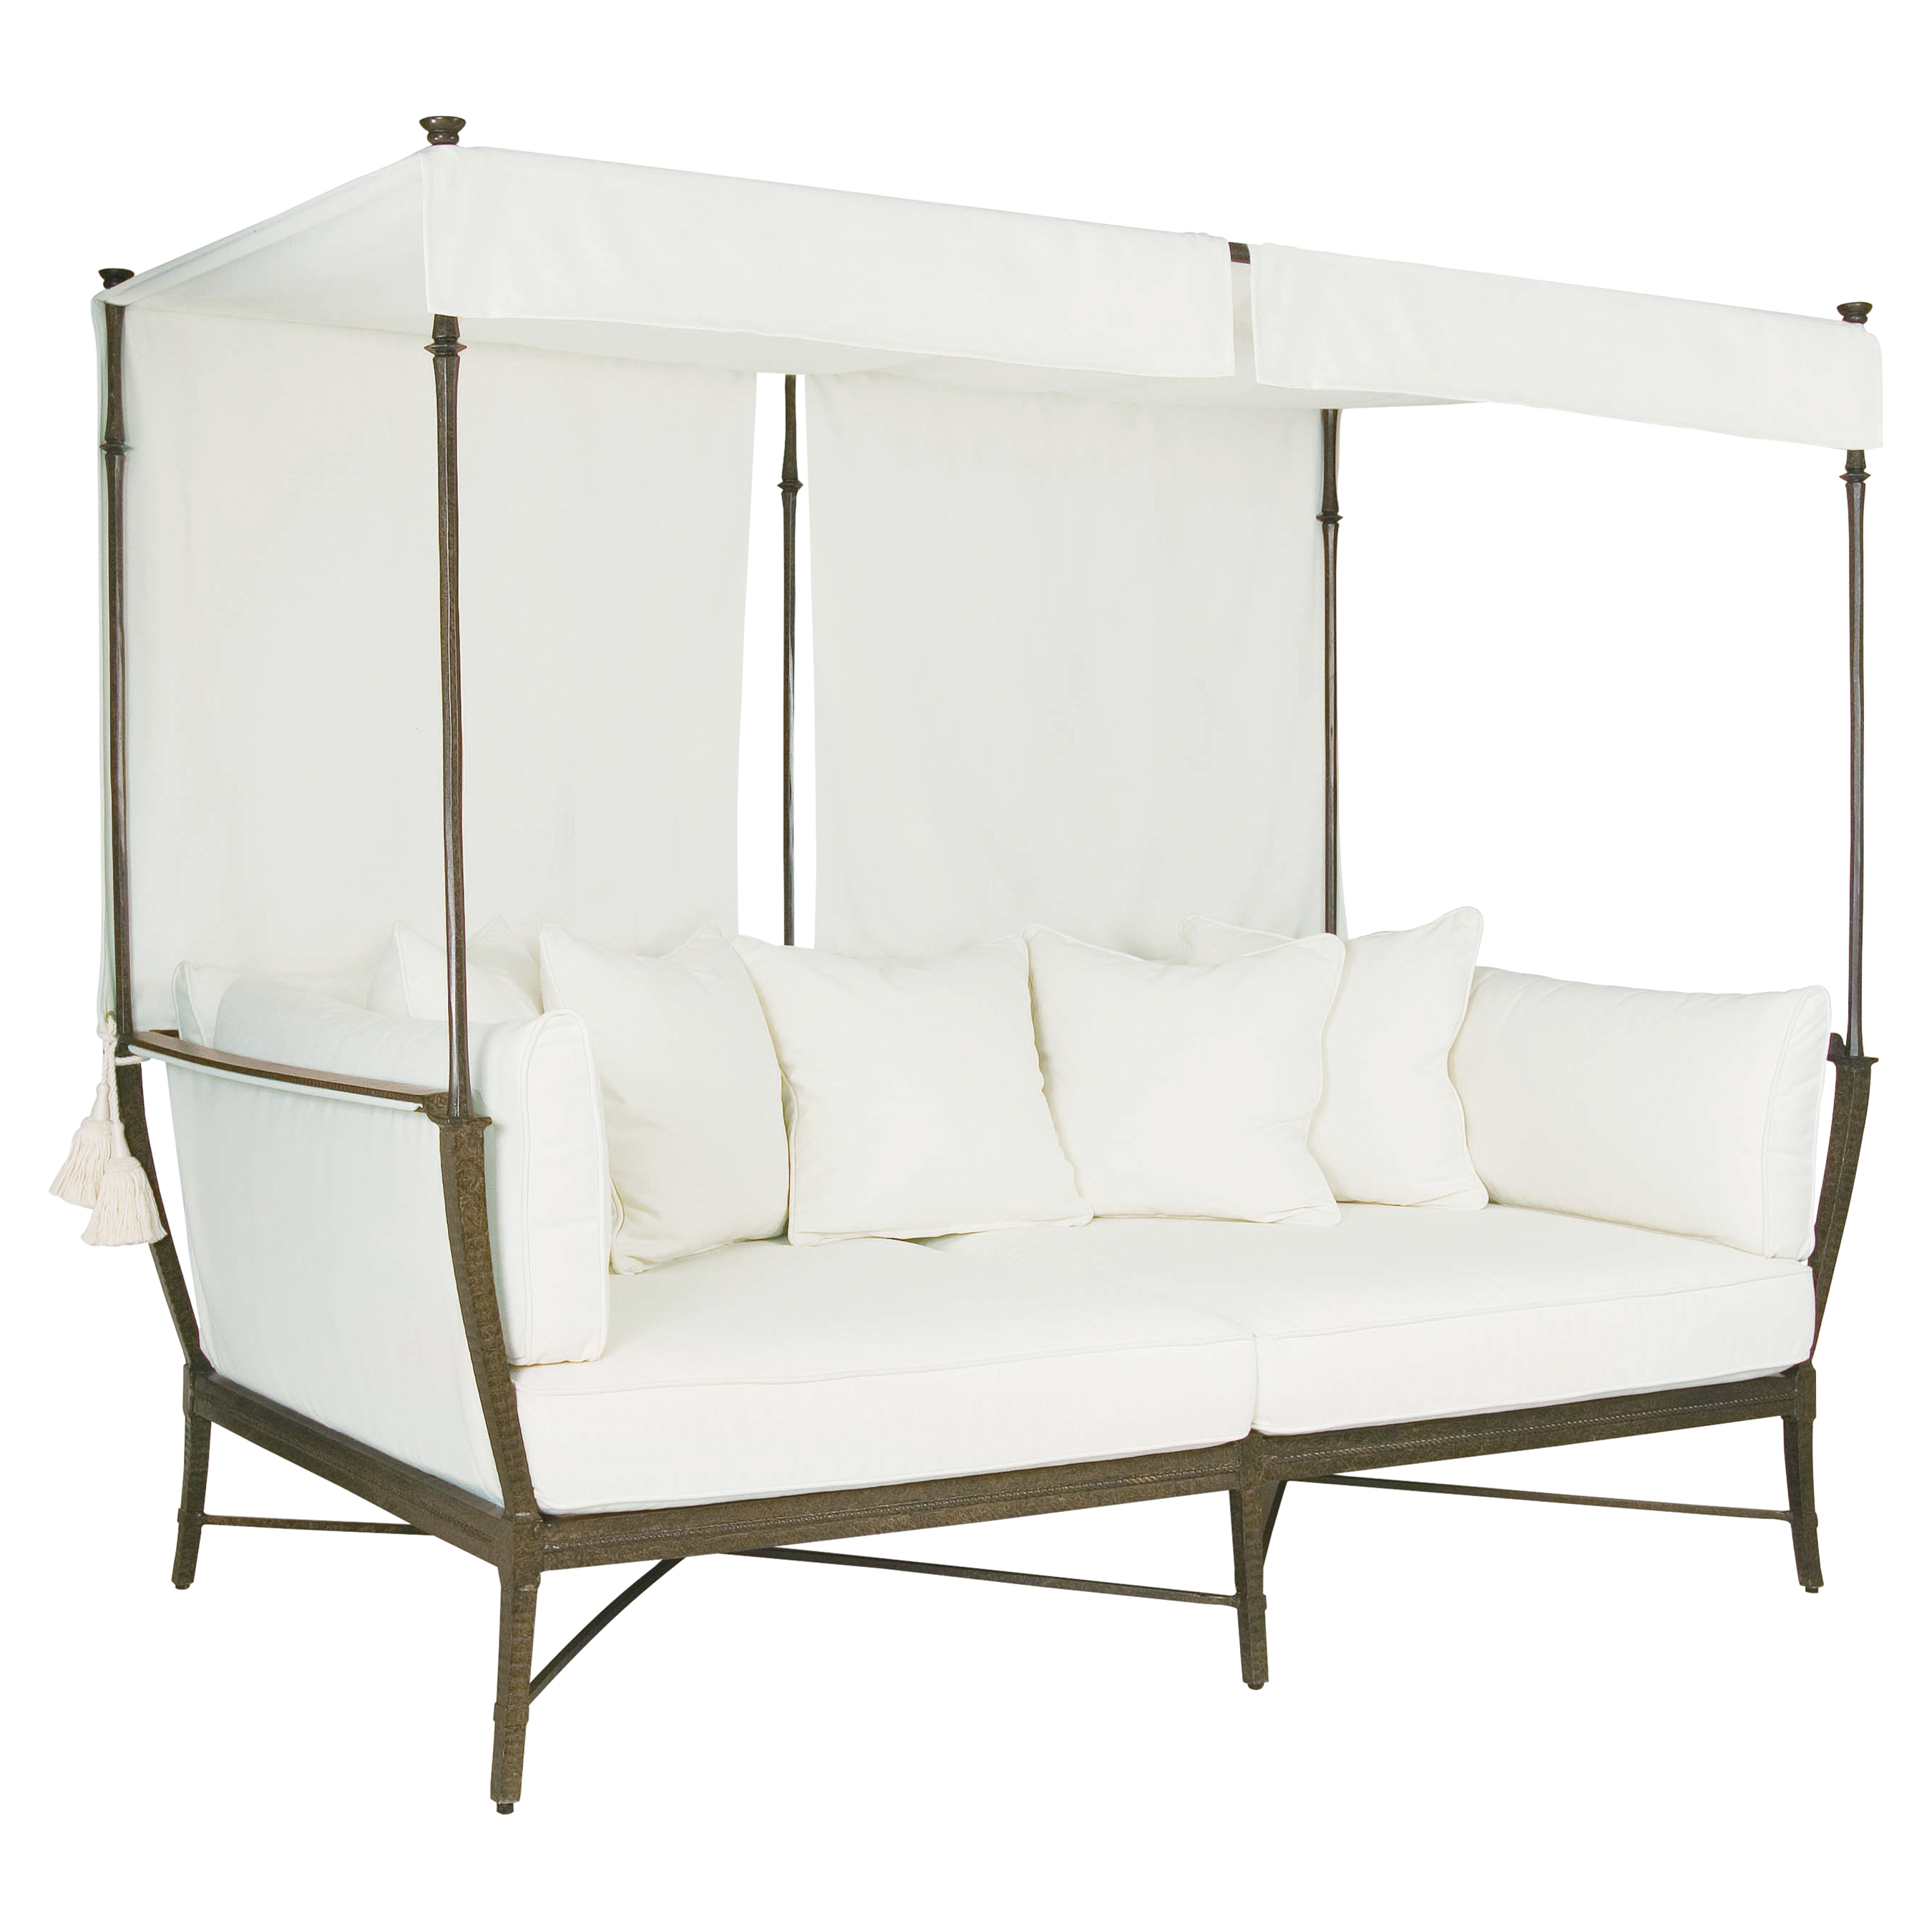 Jane Modern French White Canopy Metal Outdoor Daybed  sc 1 st  Kathy Kuo Home : outdoor sofa with canopy - memphite.com